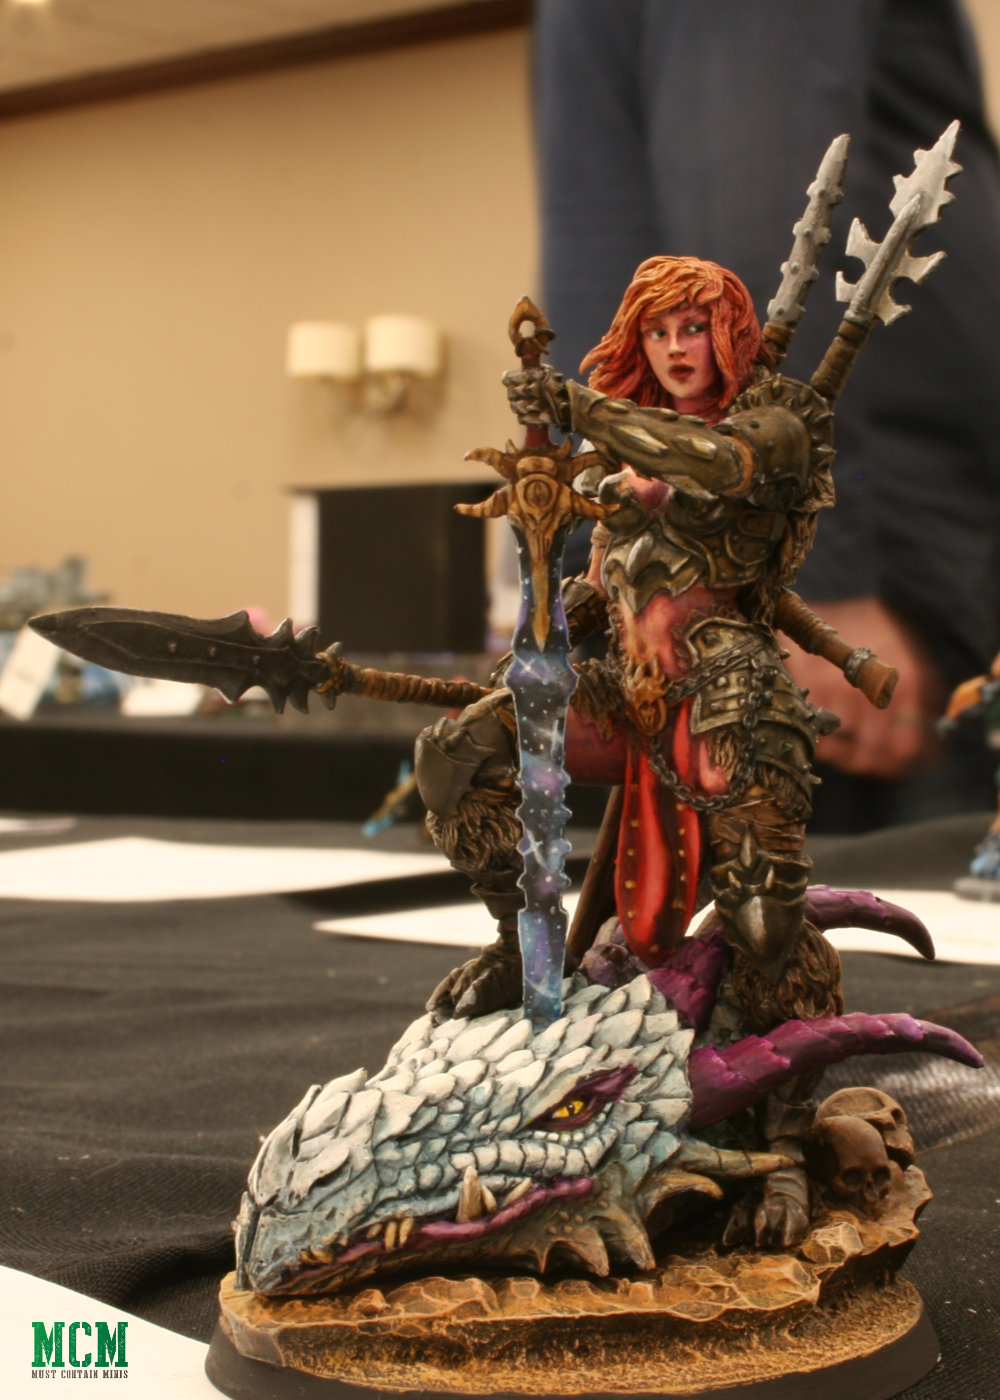 Dragon Huntress by Black Sun Miniatures as painted by Ramy Tawil